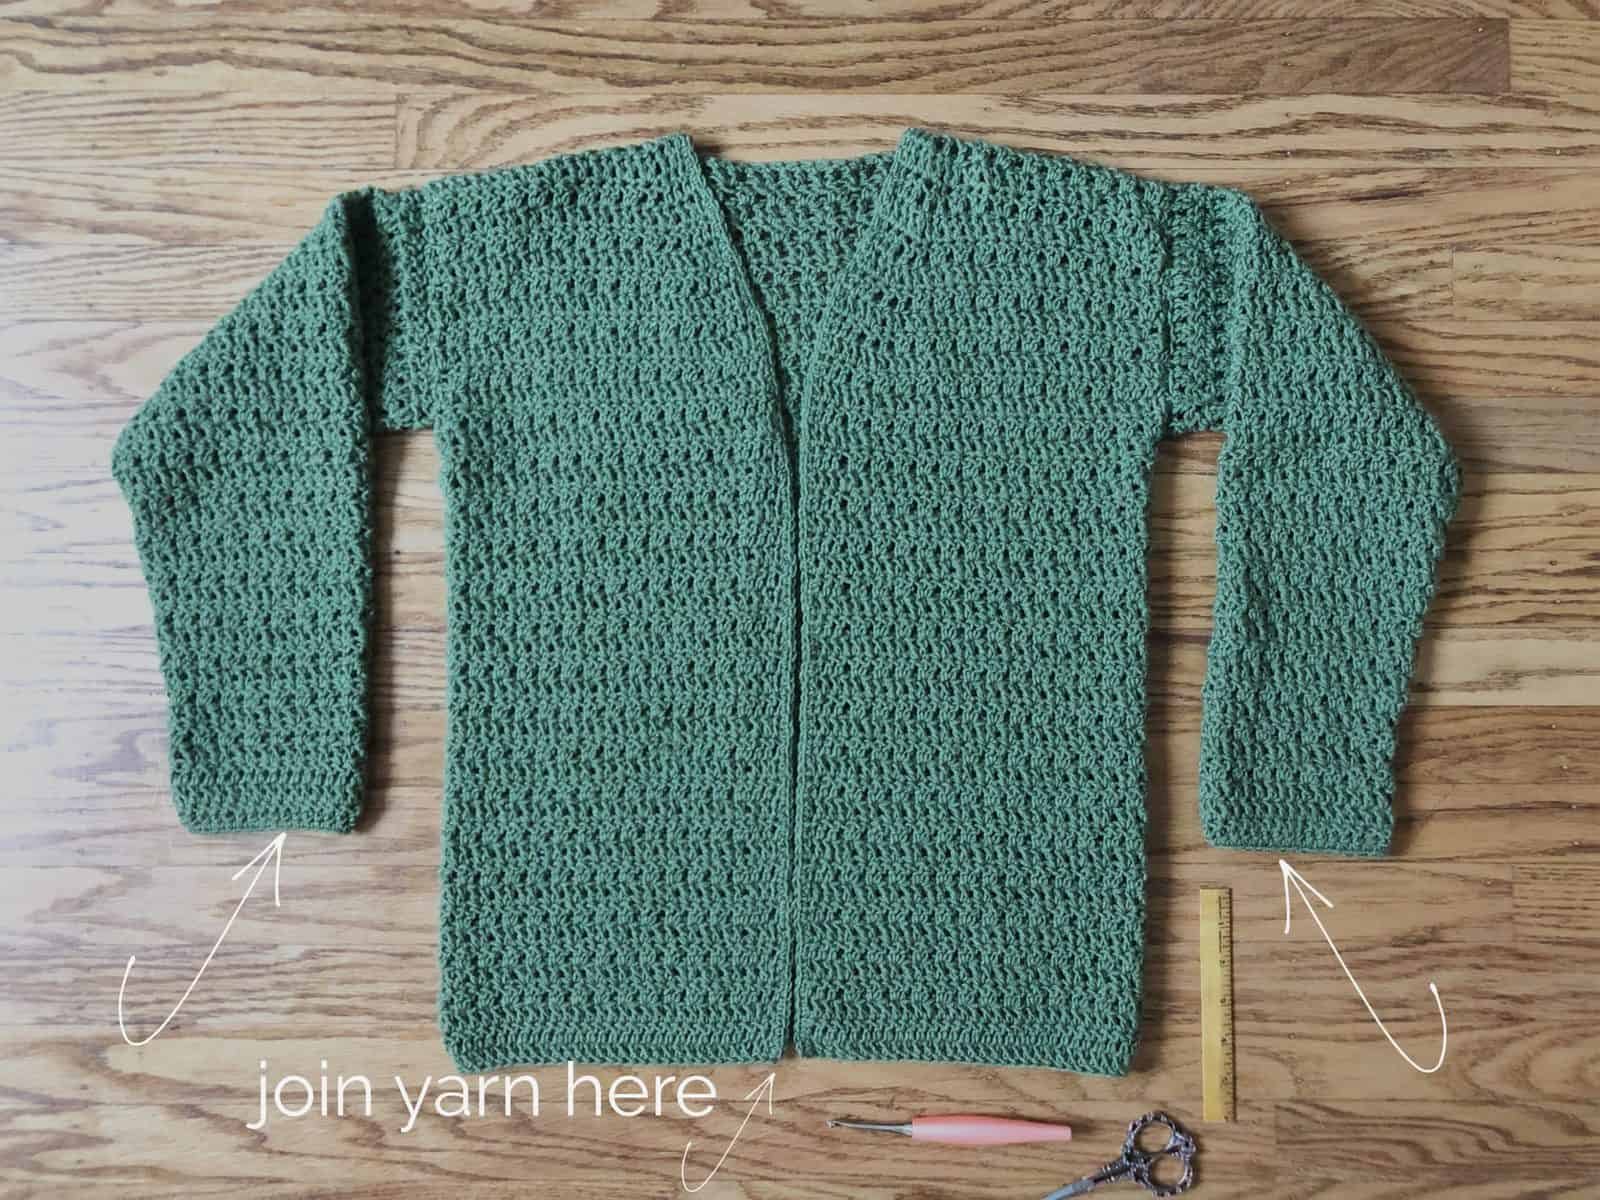 Finished crochet cardigan with text on where to add lapel.